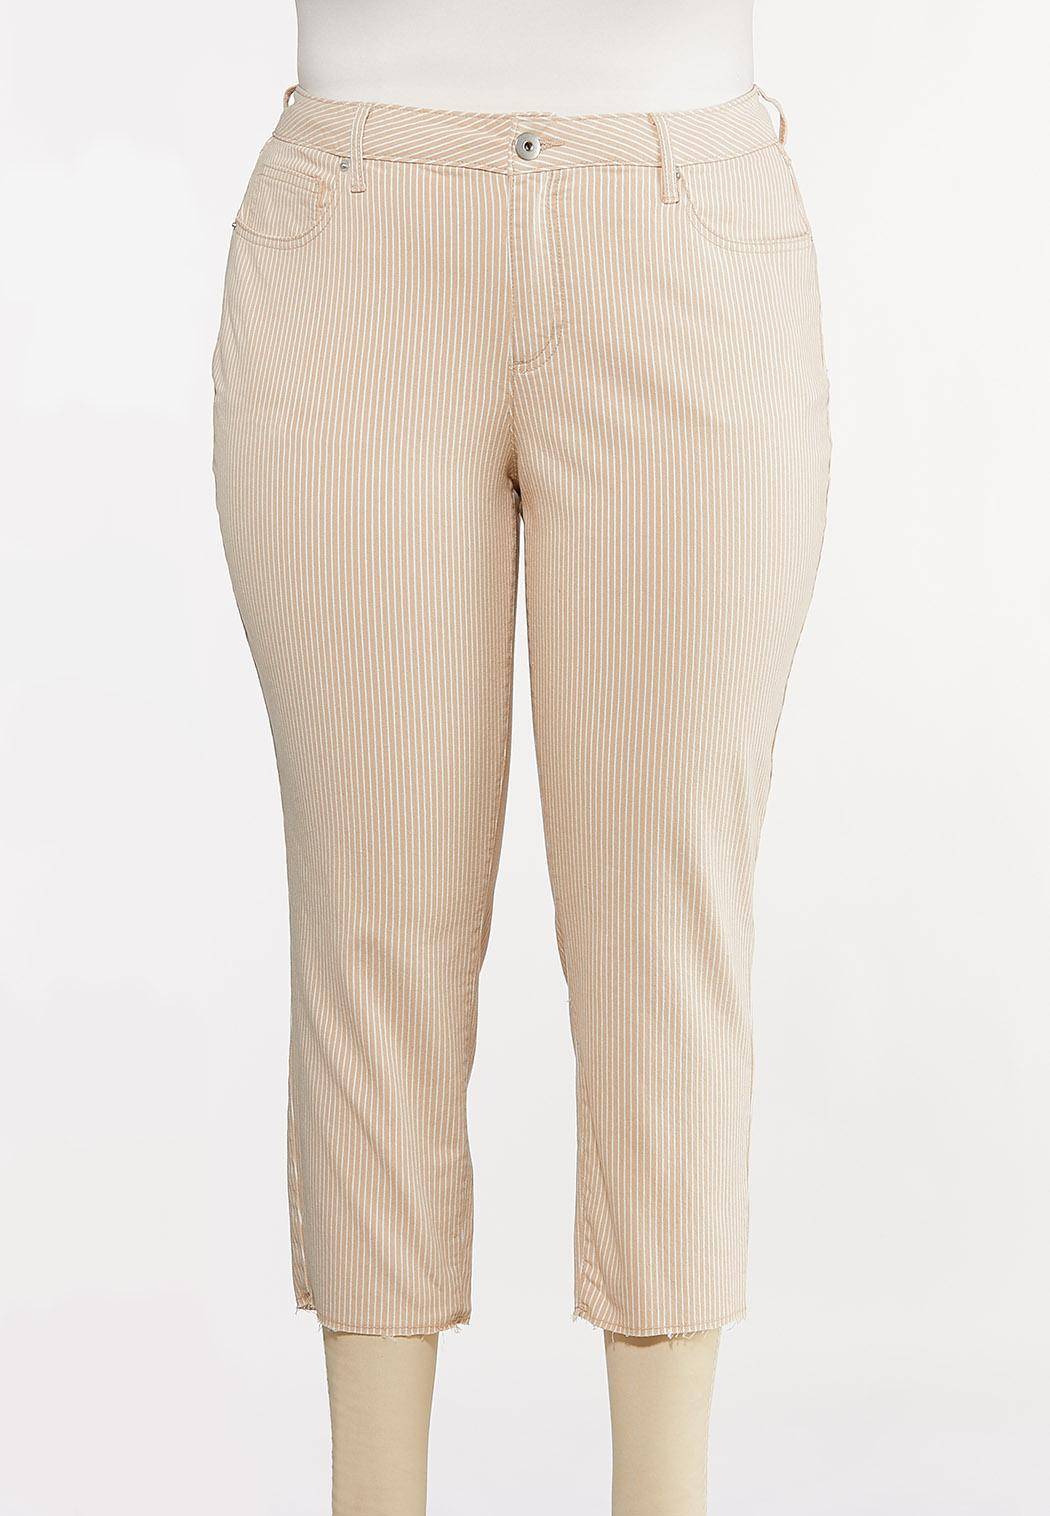 Plus Size Neutral Stripe Ankle Jeans